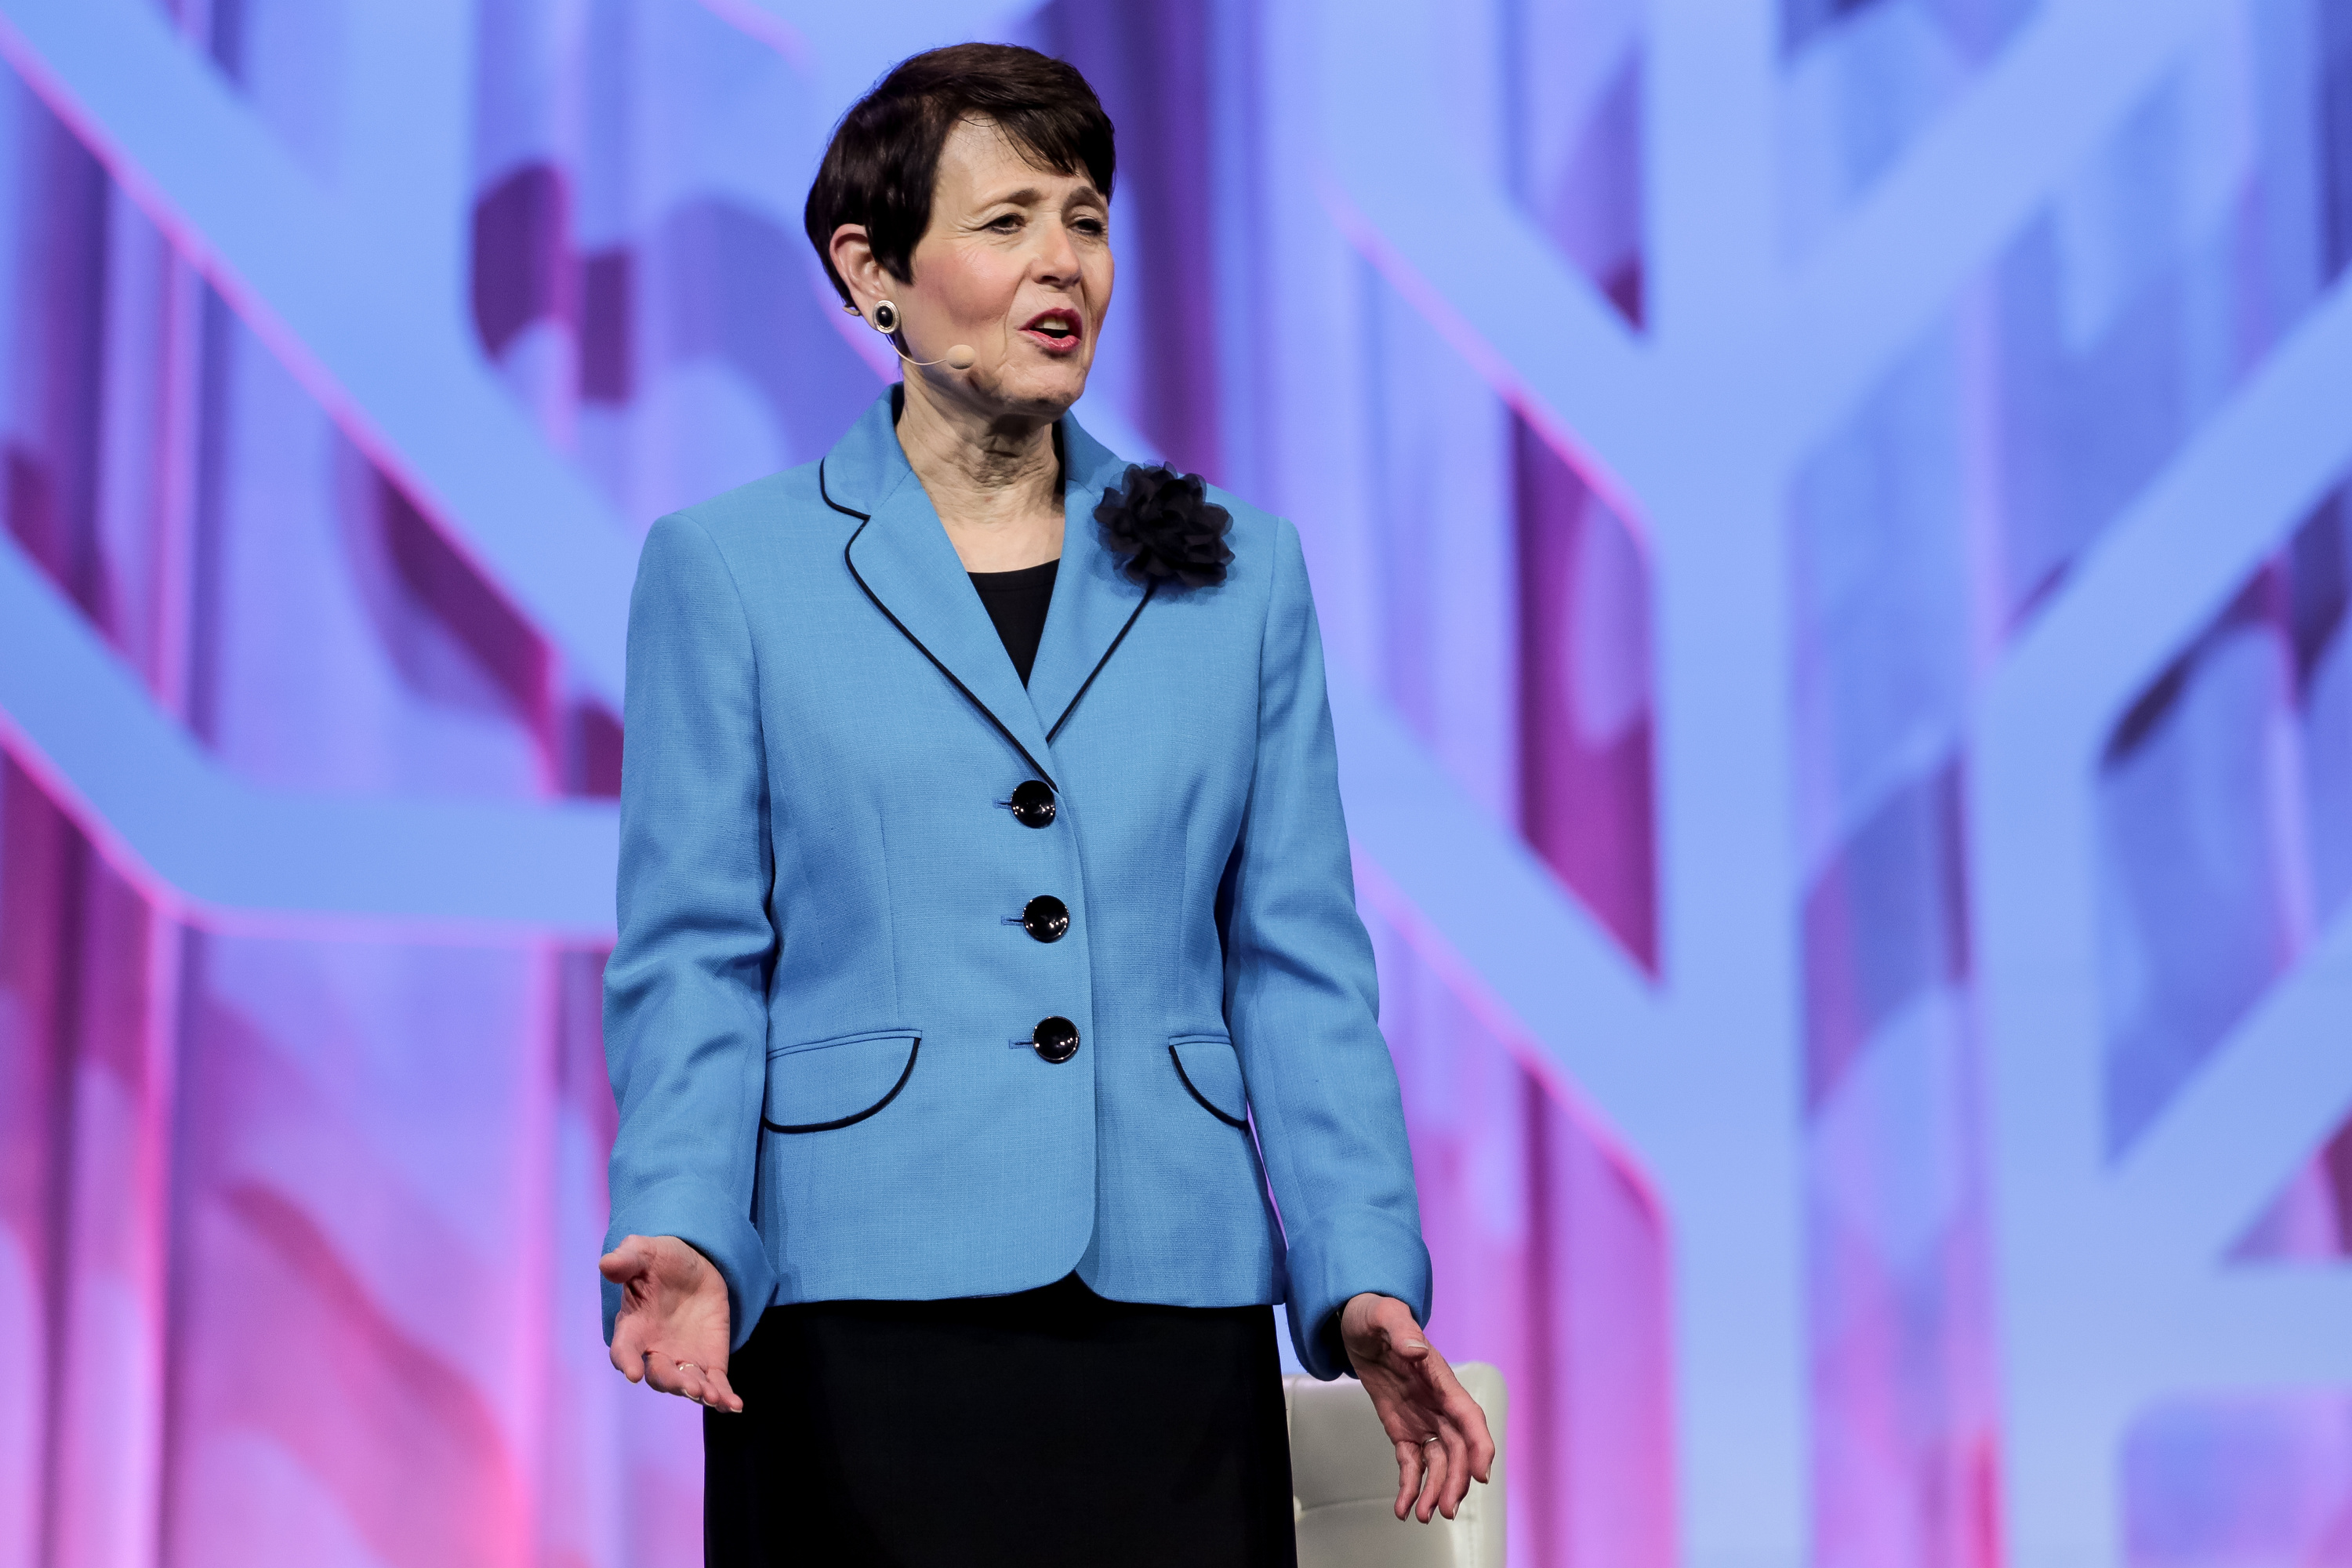 Sister Susan Bednar, wife of Elder David A. Bednar of the Quorum of the Twelve Apostles, speak during the RootsTech conference, held at the Salt Palace in Salt Lake City on Saturday, March 2, 2019.